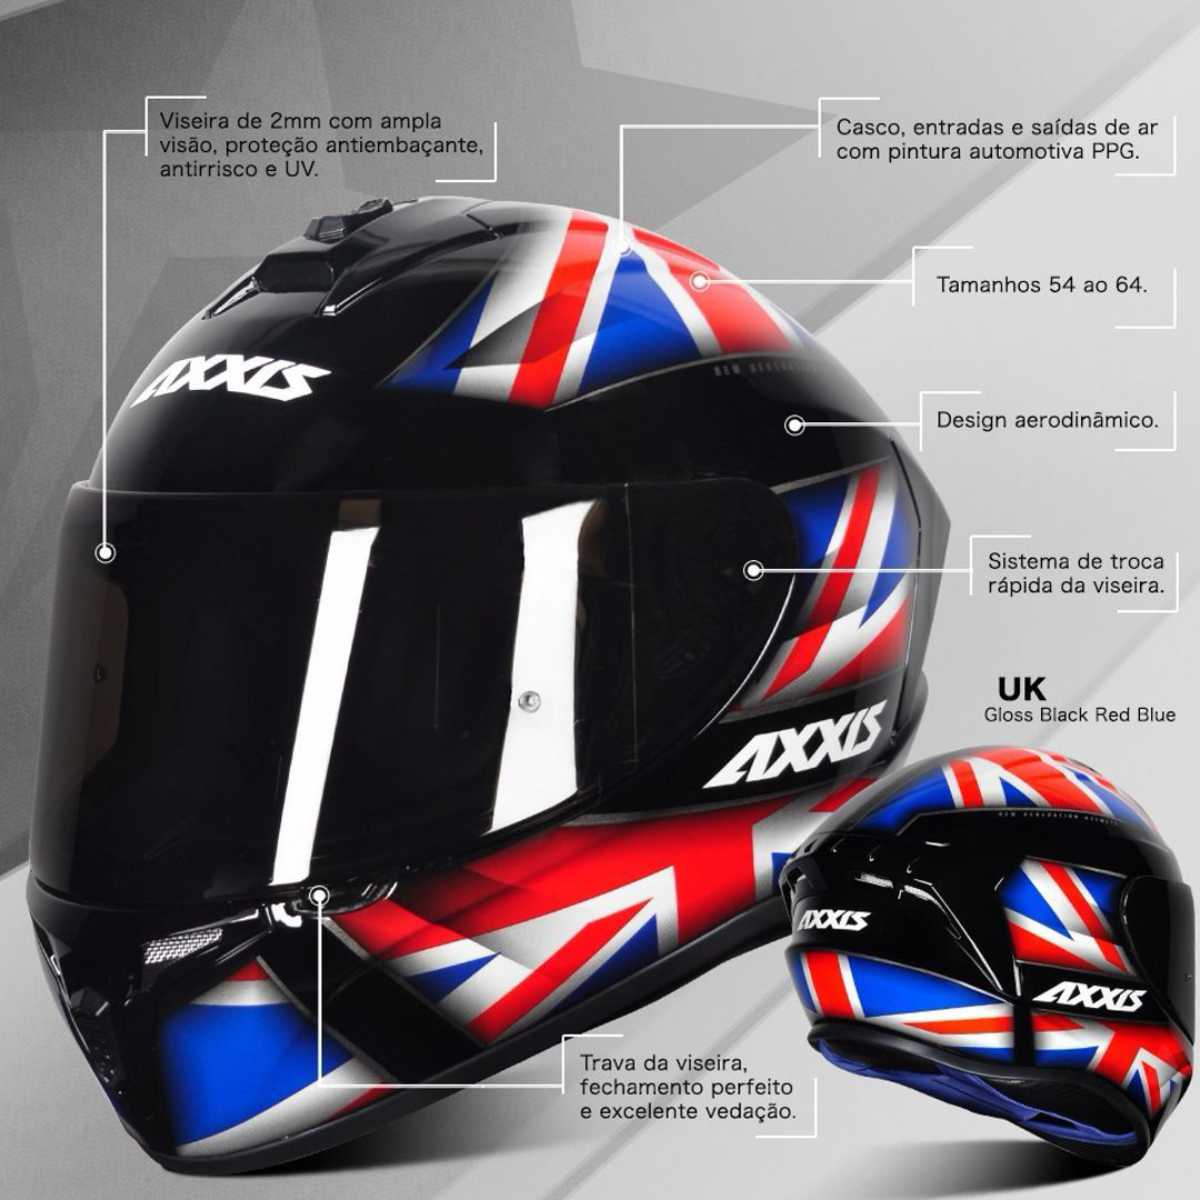 CAPACETE AXXIS DRAKEN UK GLOSS BLACK RED BLUE + VISEIRA FUMÊ EXTRA